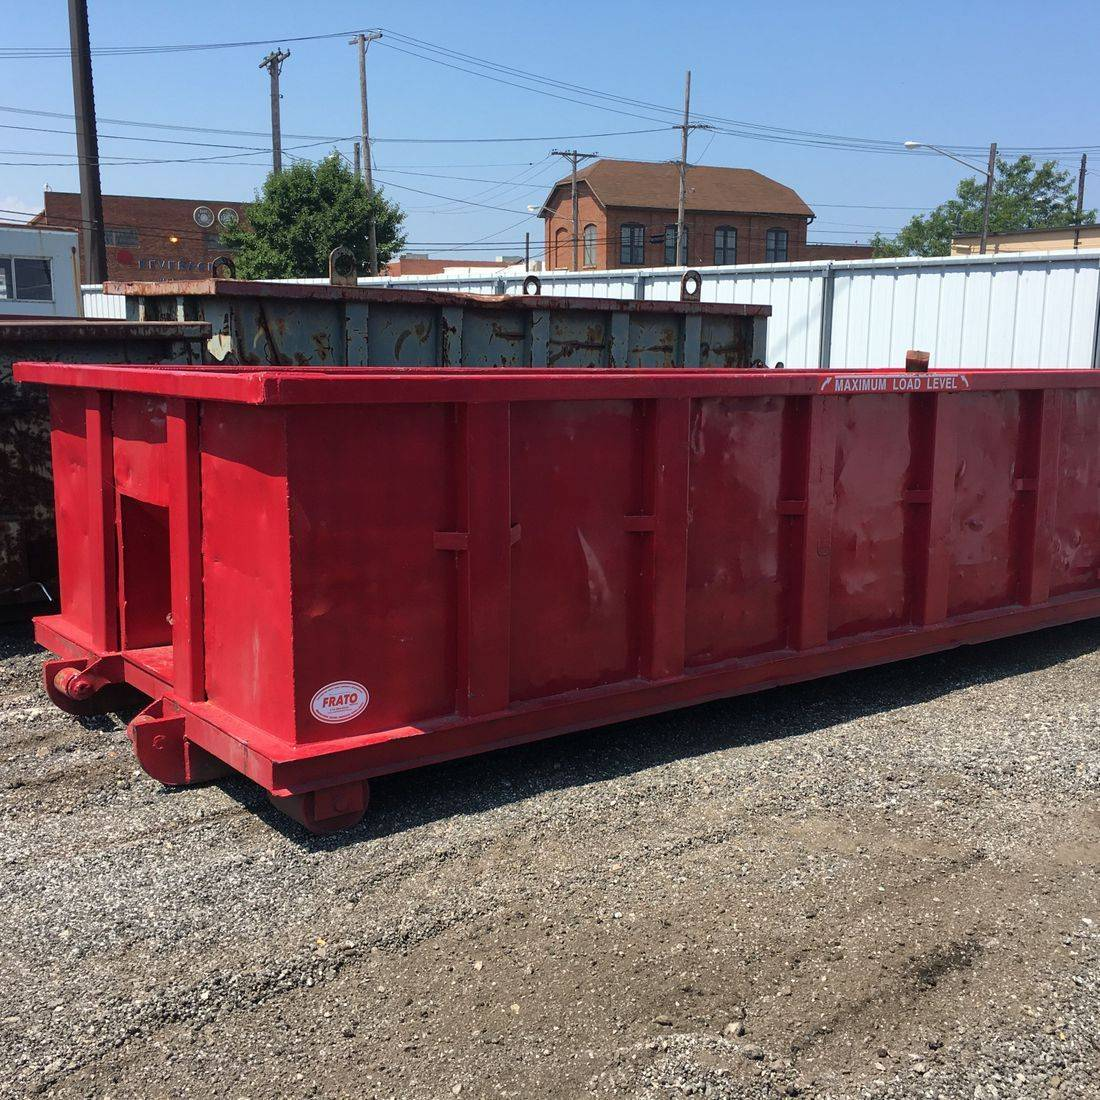 Frato Products - Dumpster Repair and Painting